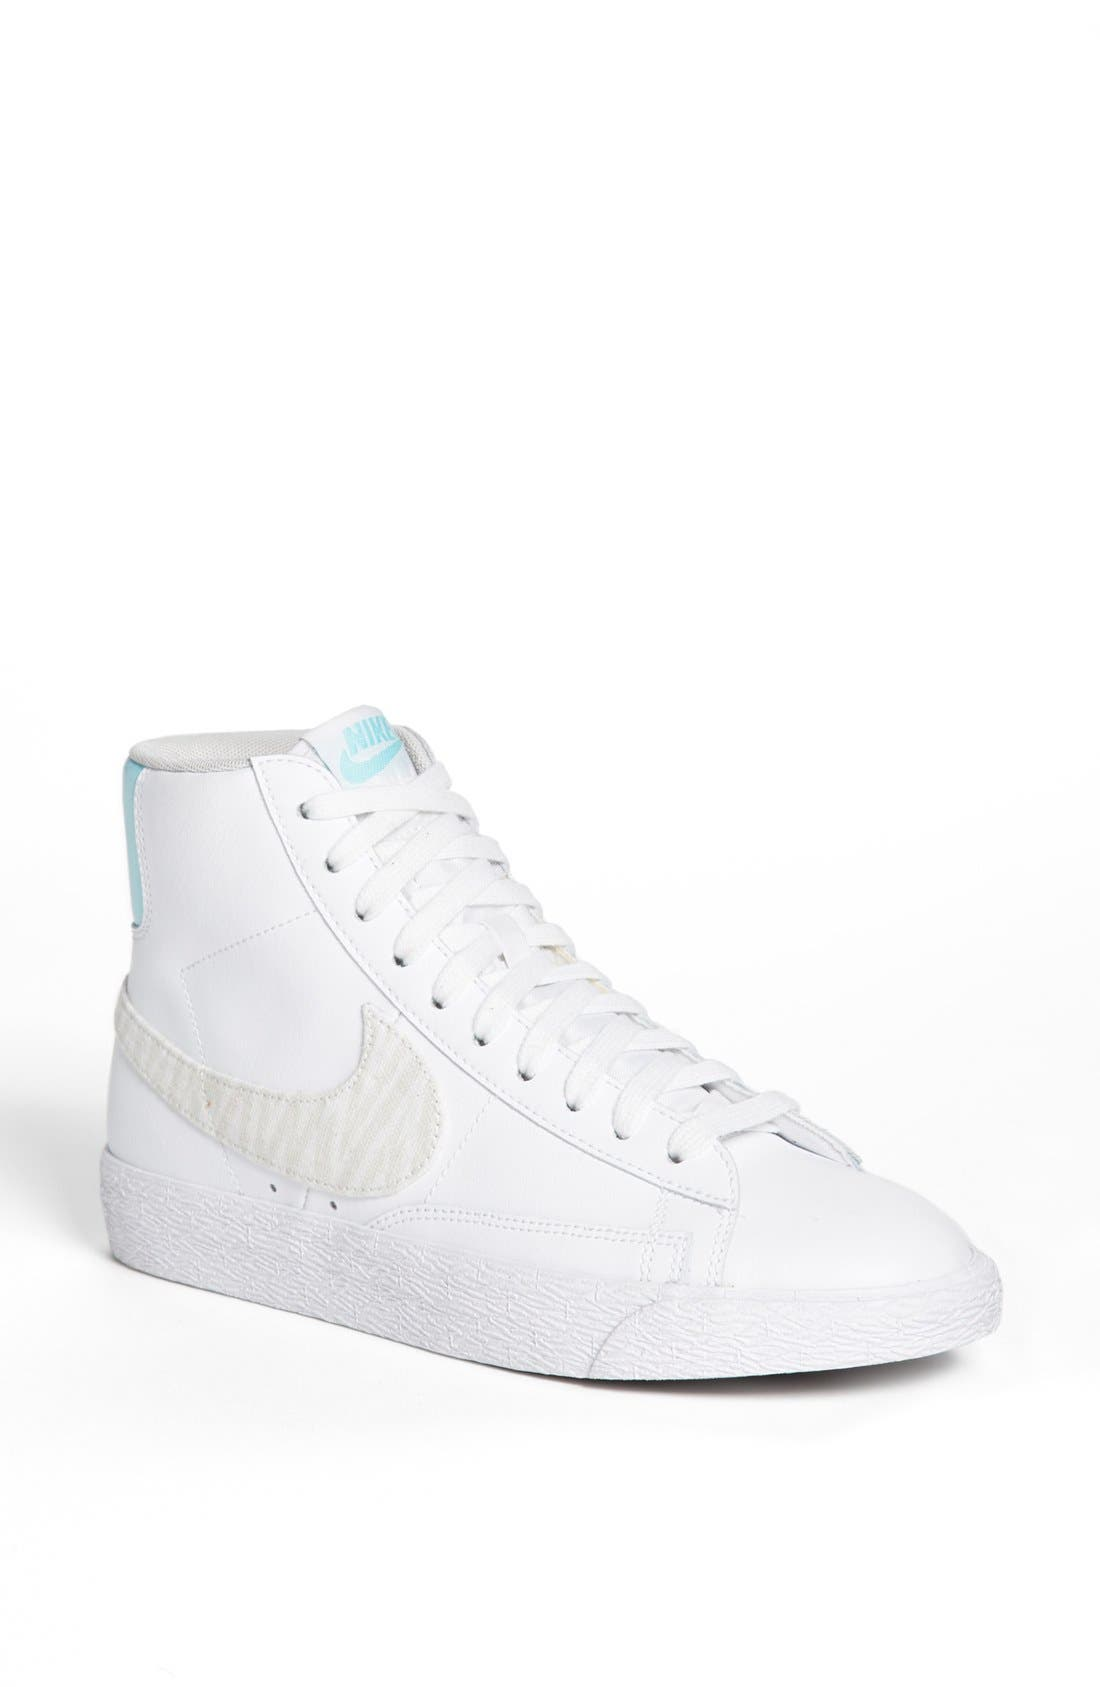 'Blazer' Mid Leather Sneaker,                         Main,                         color, 103